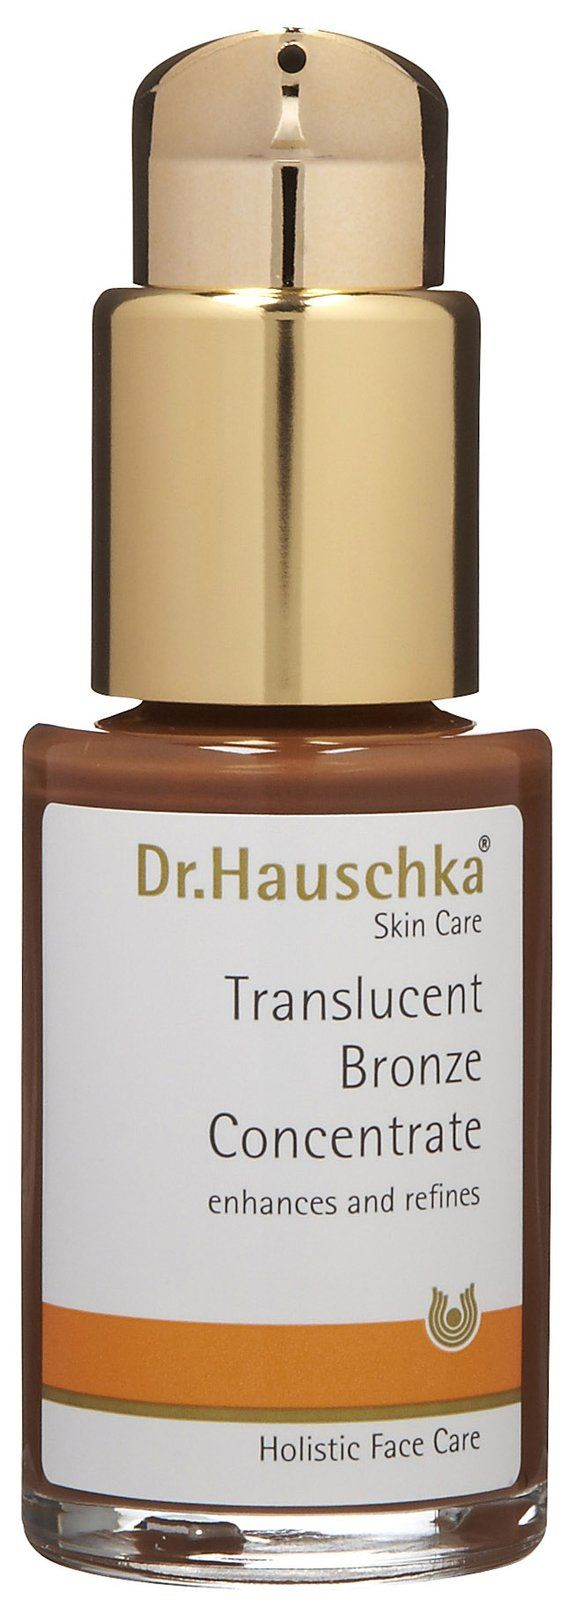 Dr Hauschka Translucent Bronze Concentrate Mix With Facial Moisturizer For A Sun Kissed Even Complexion The Beauty P Translucent Beauty Bar Skin Care